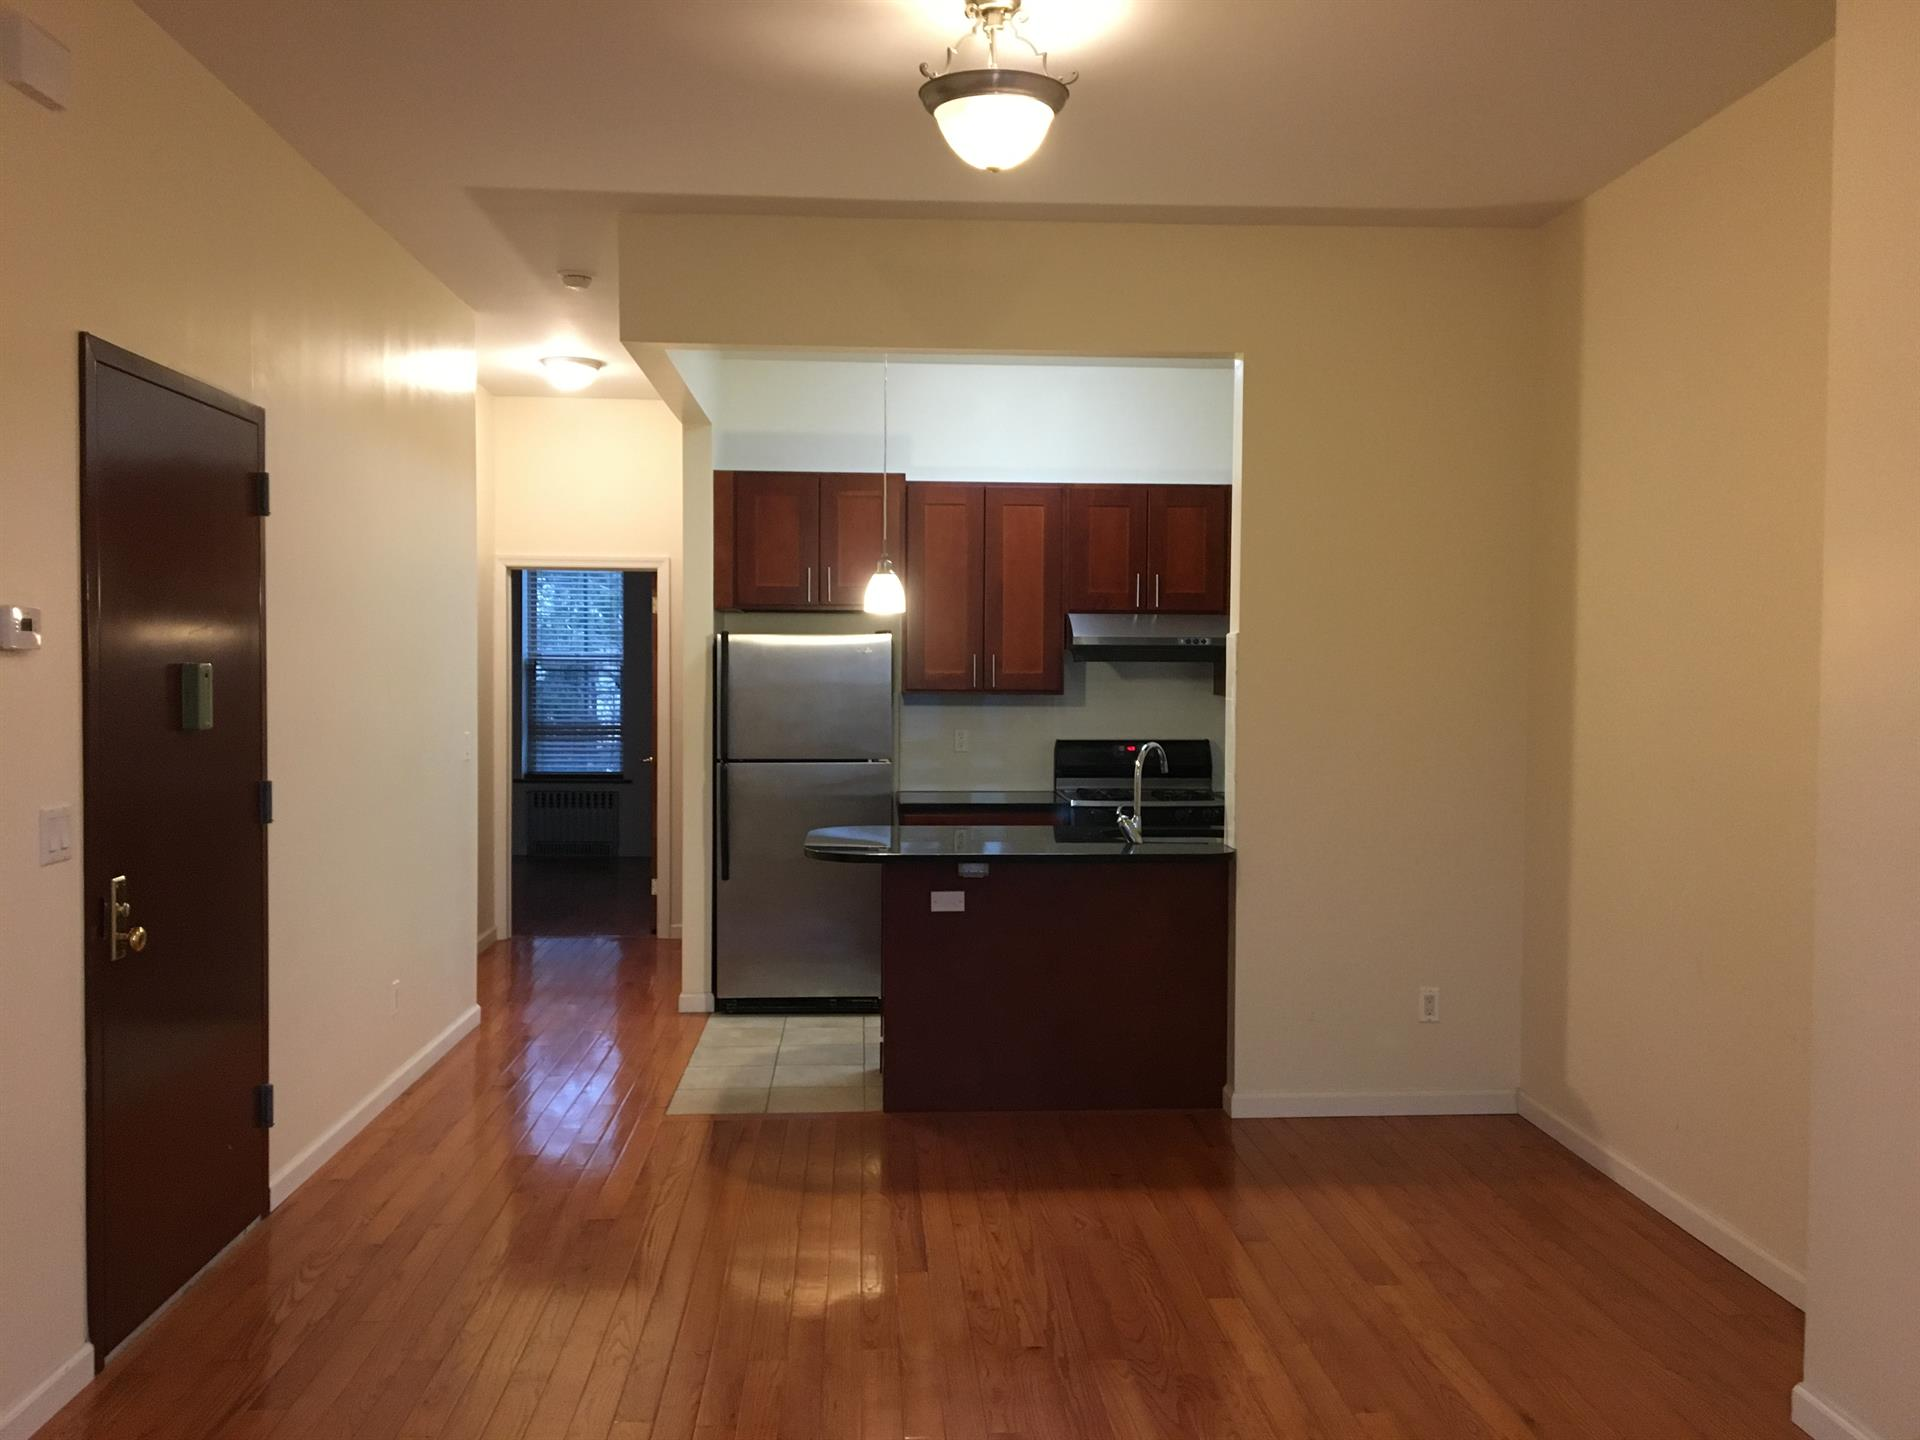 Additional photo for property listing at 73rd/4th Avenue  Brooklyn, New York 11209 United States